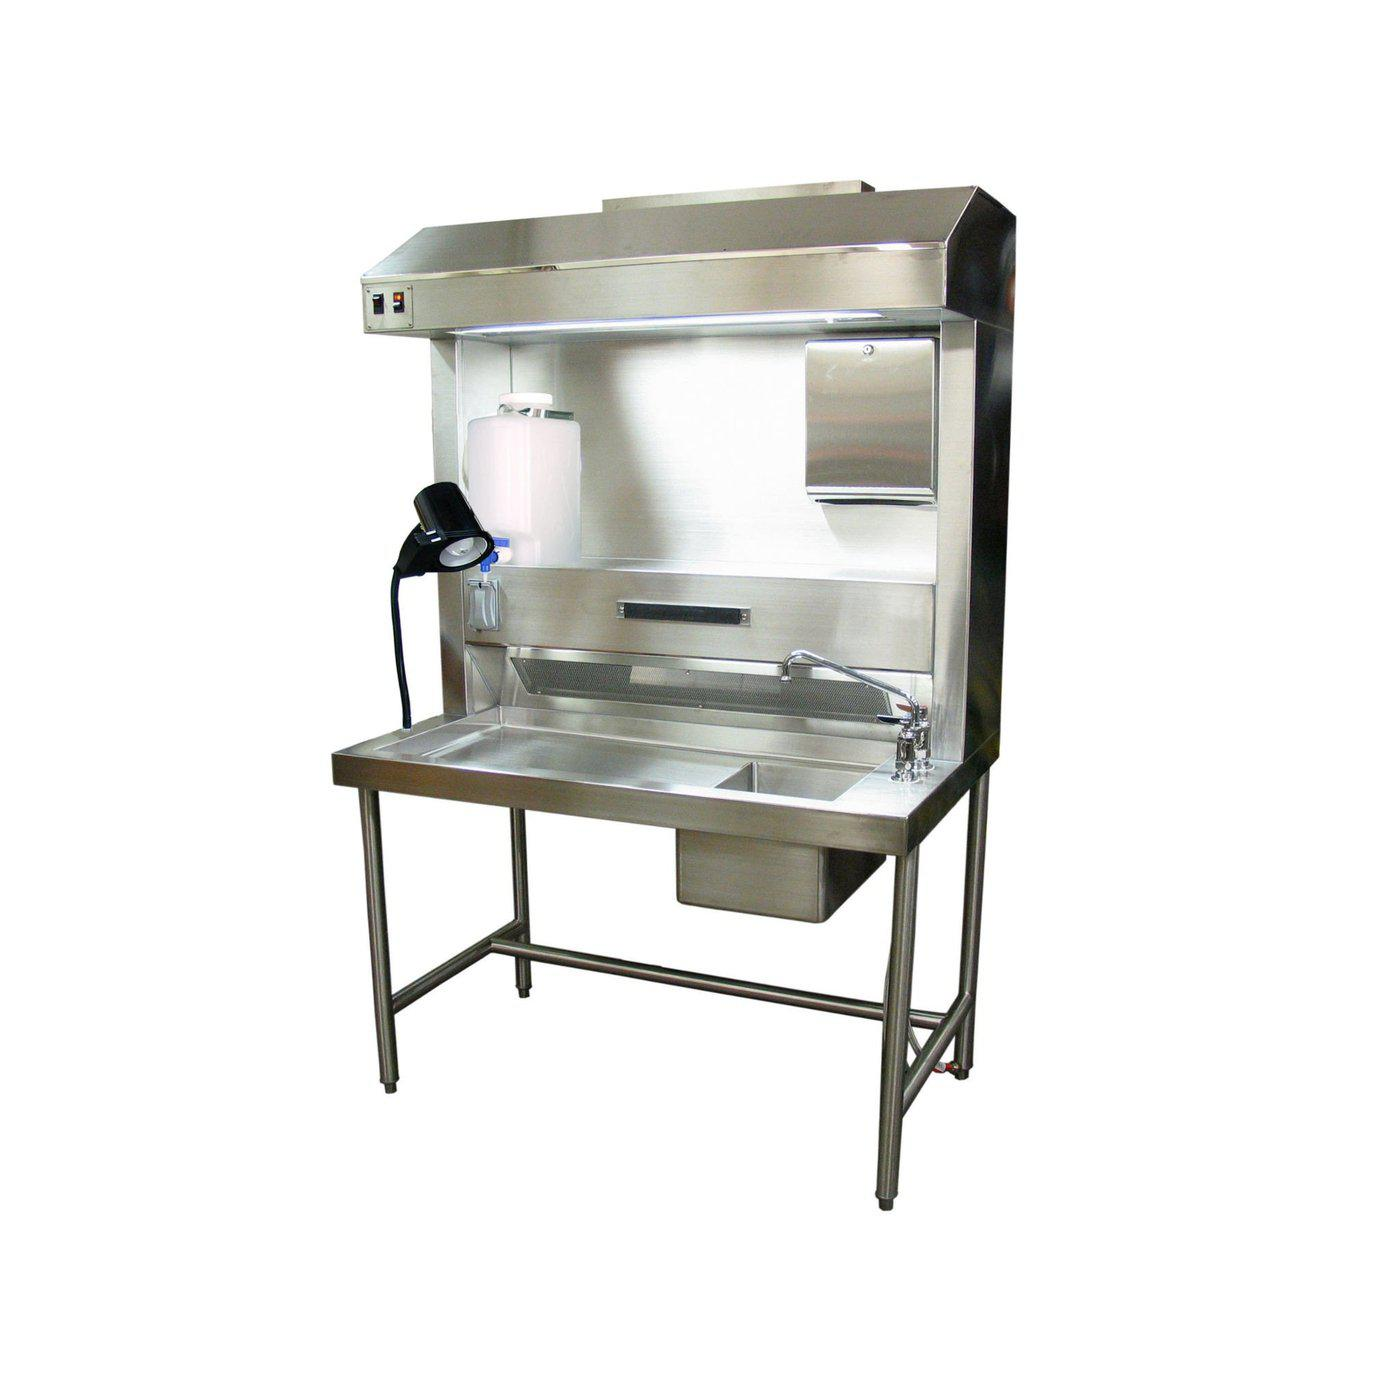 Pathology Workstation-Pathology Grossing Stations-Mortech Manufacturing Company Inc. Quality Stainless Steel Autopsy, Morgue, Funeral Home, Necropsy, Veterinary / Anatomy, Dissection Equipment and Accessories